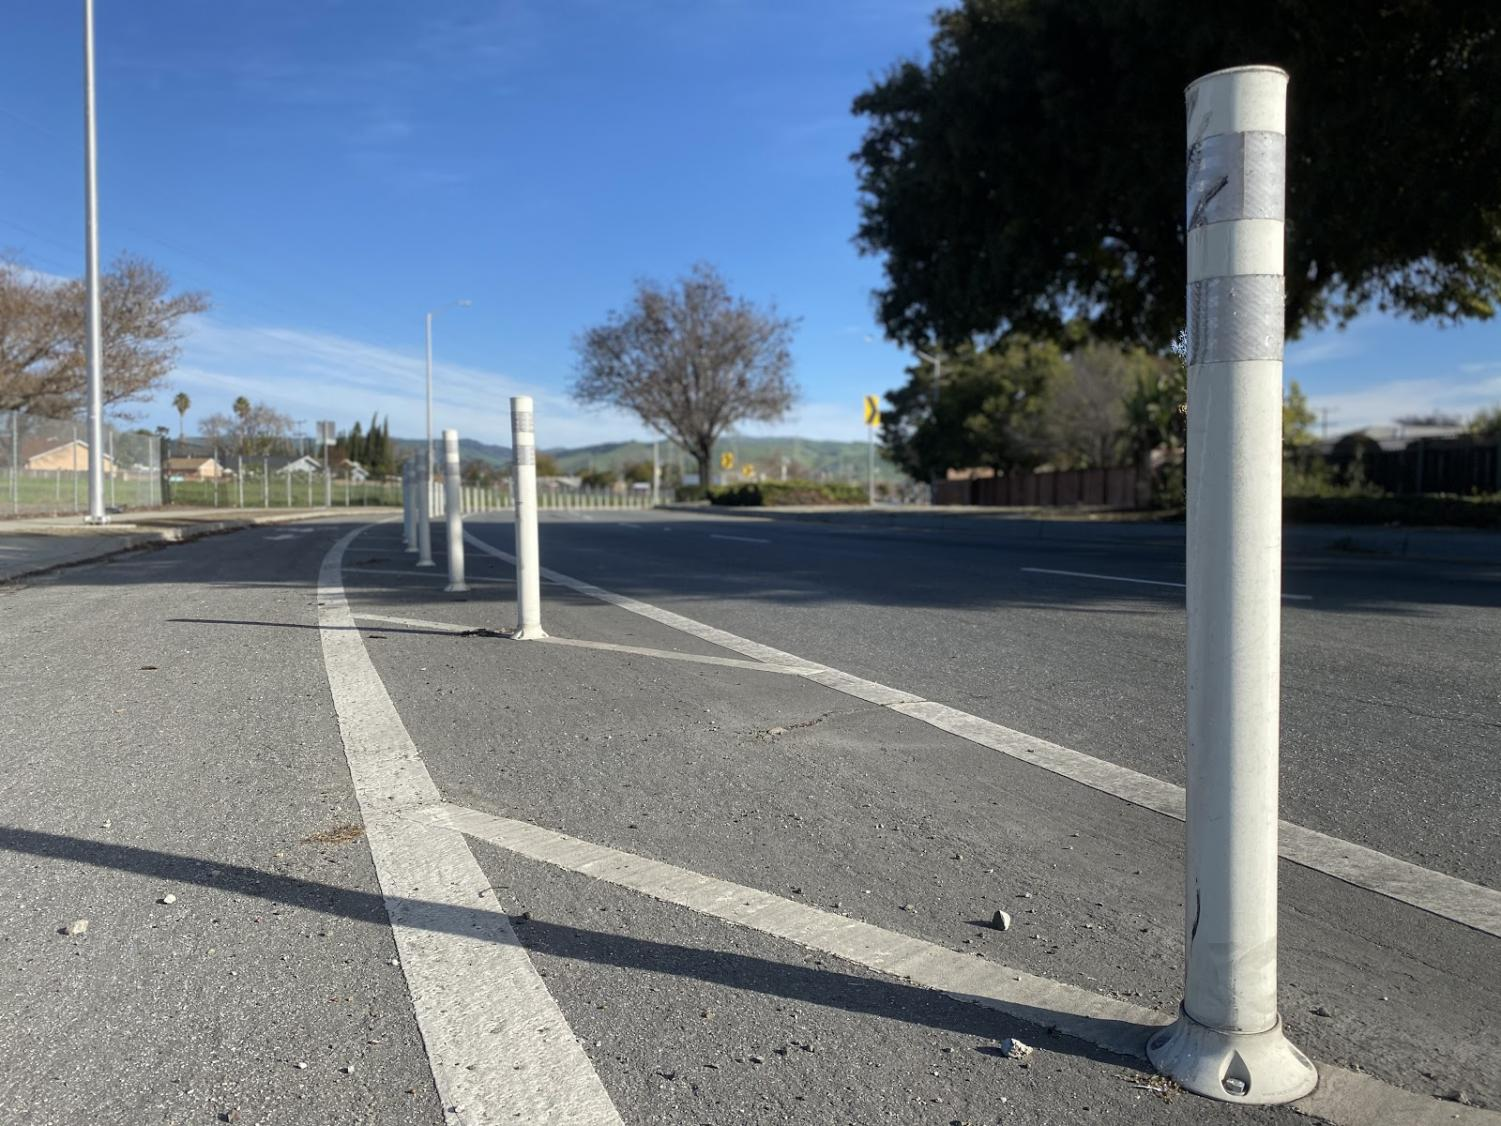 Bike poles can be seen in front of the Main Fremont Library